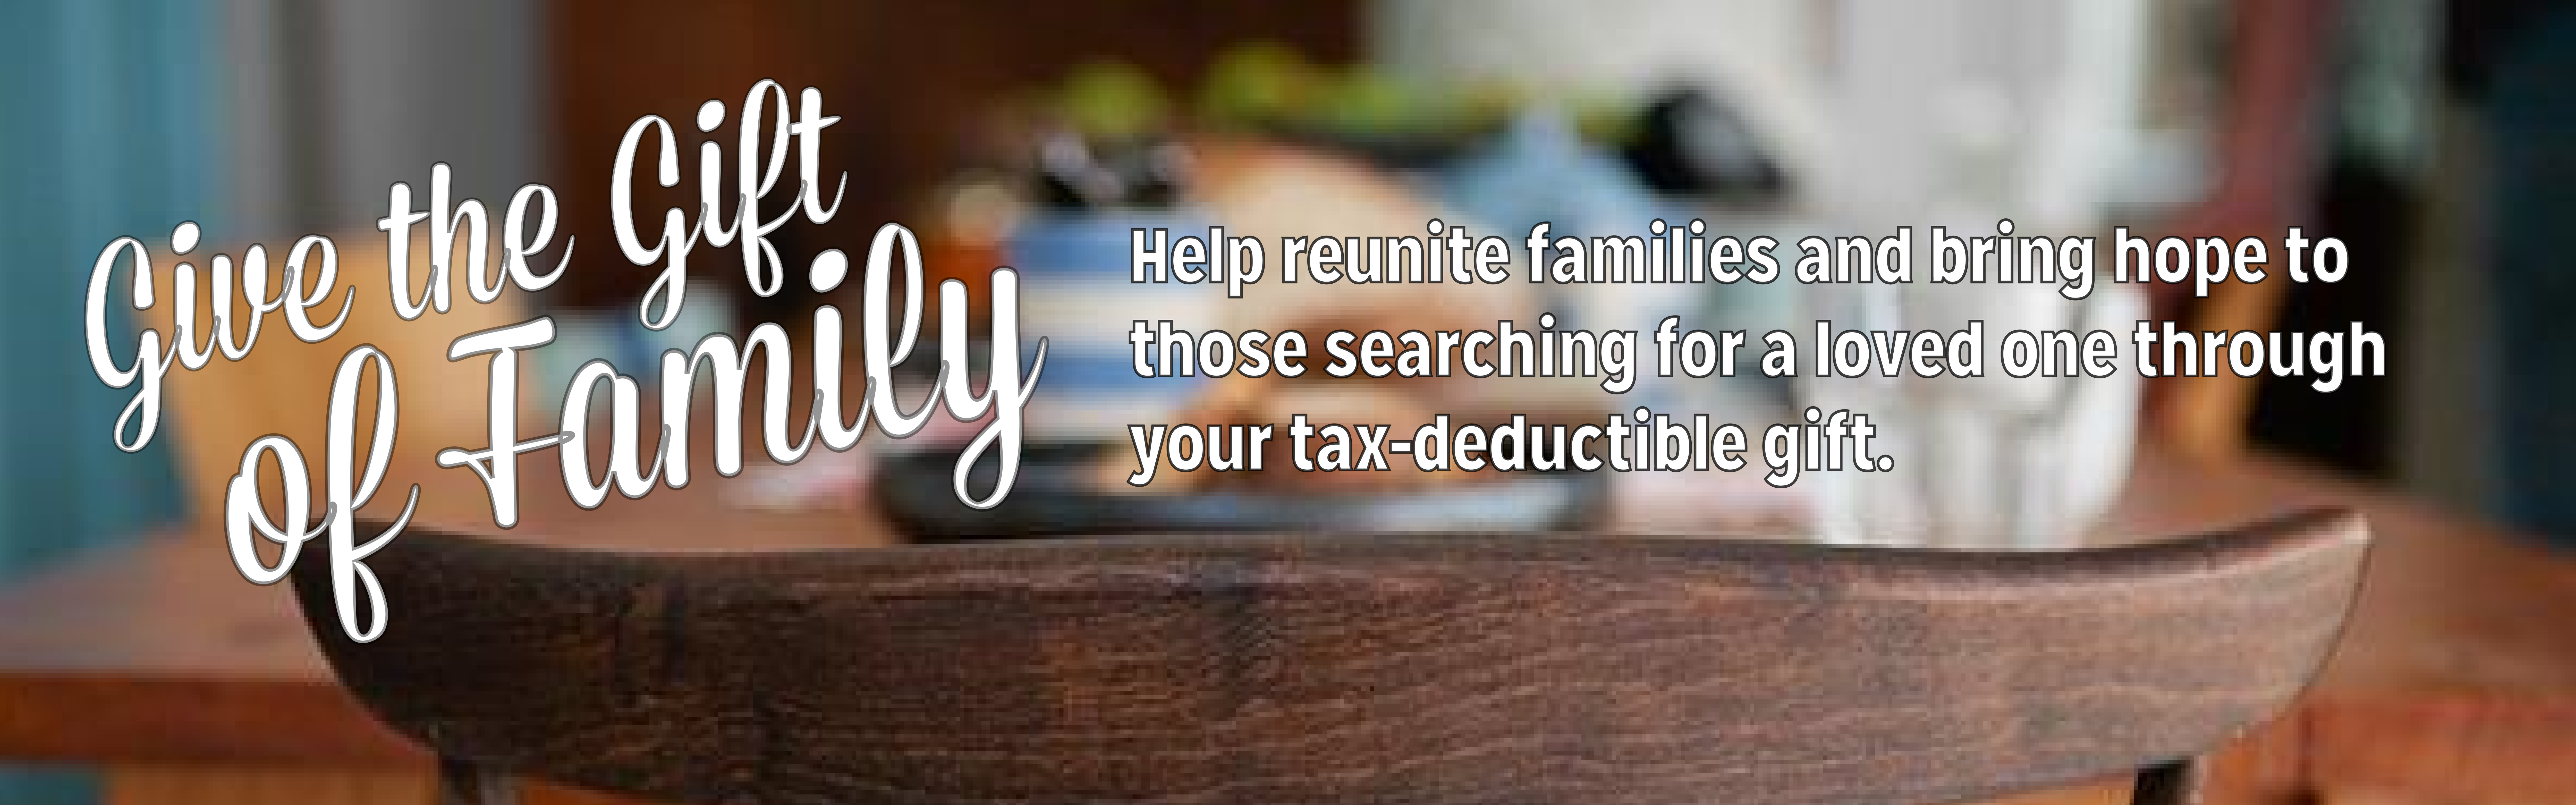 Help reunite the missing with their families through your tax-deductible donation.